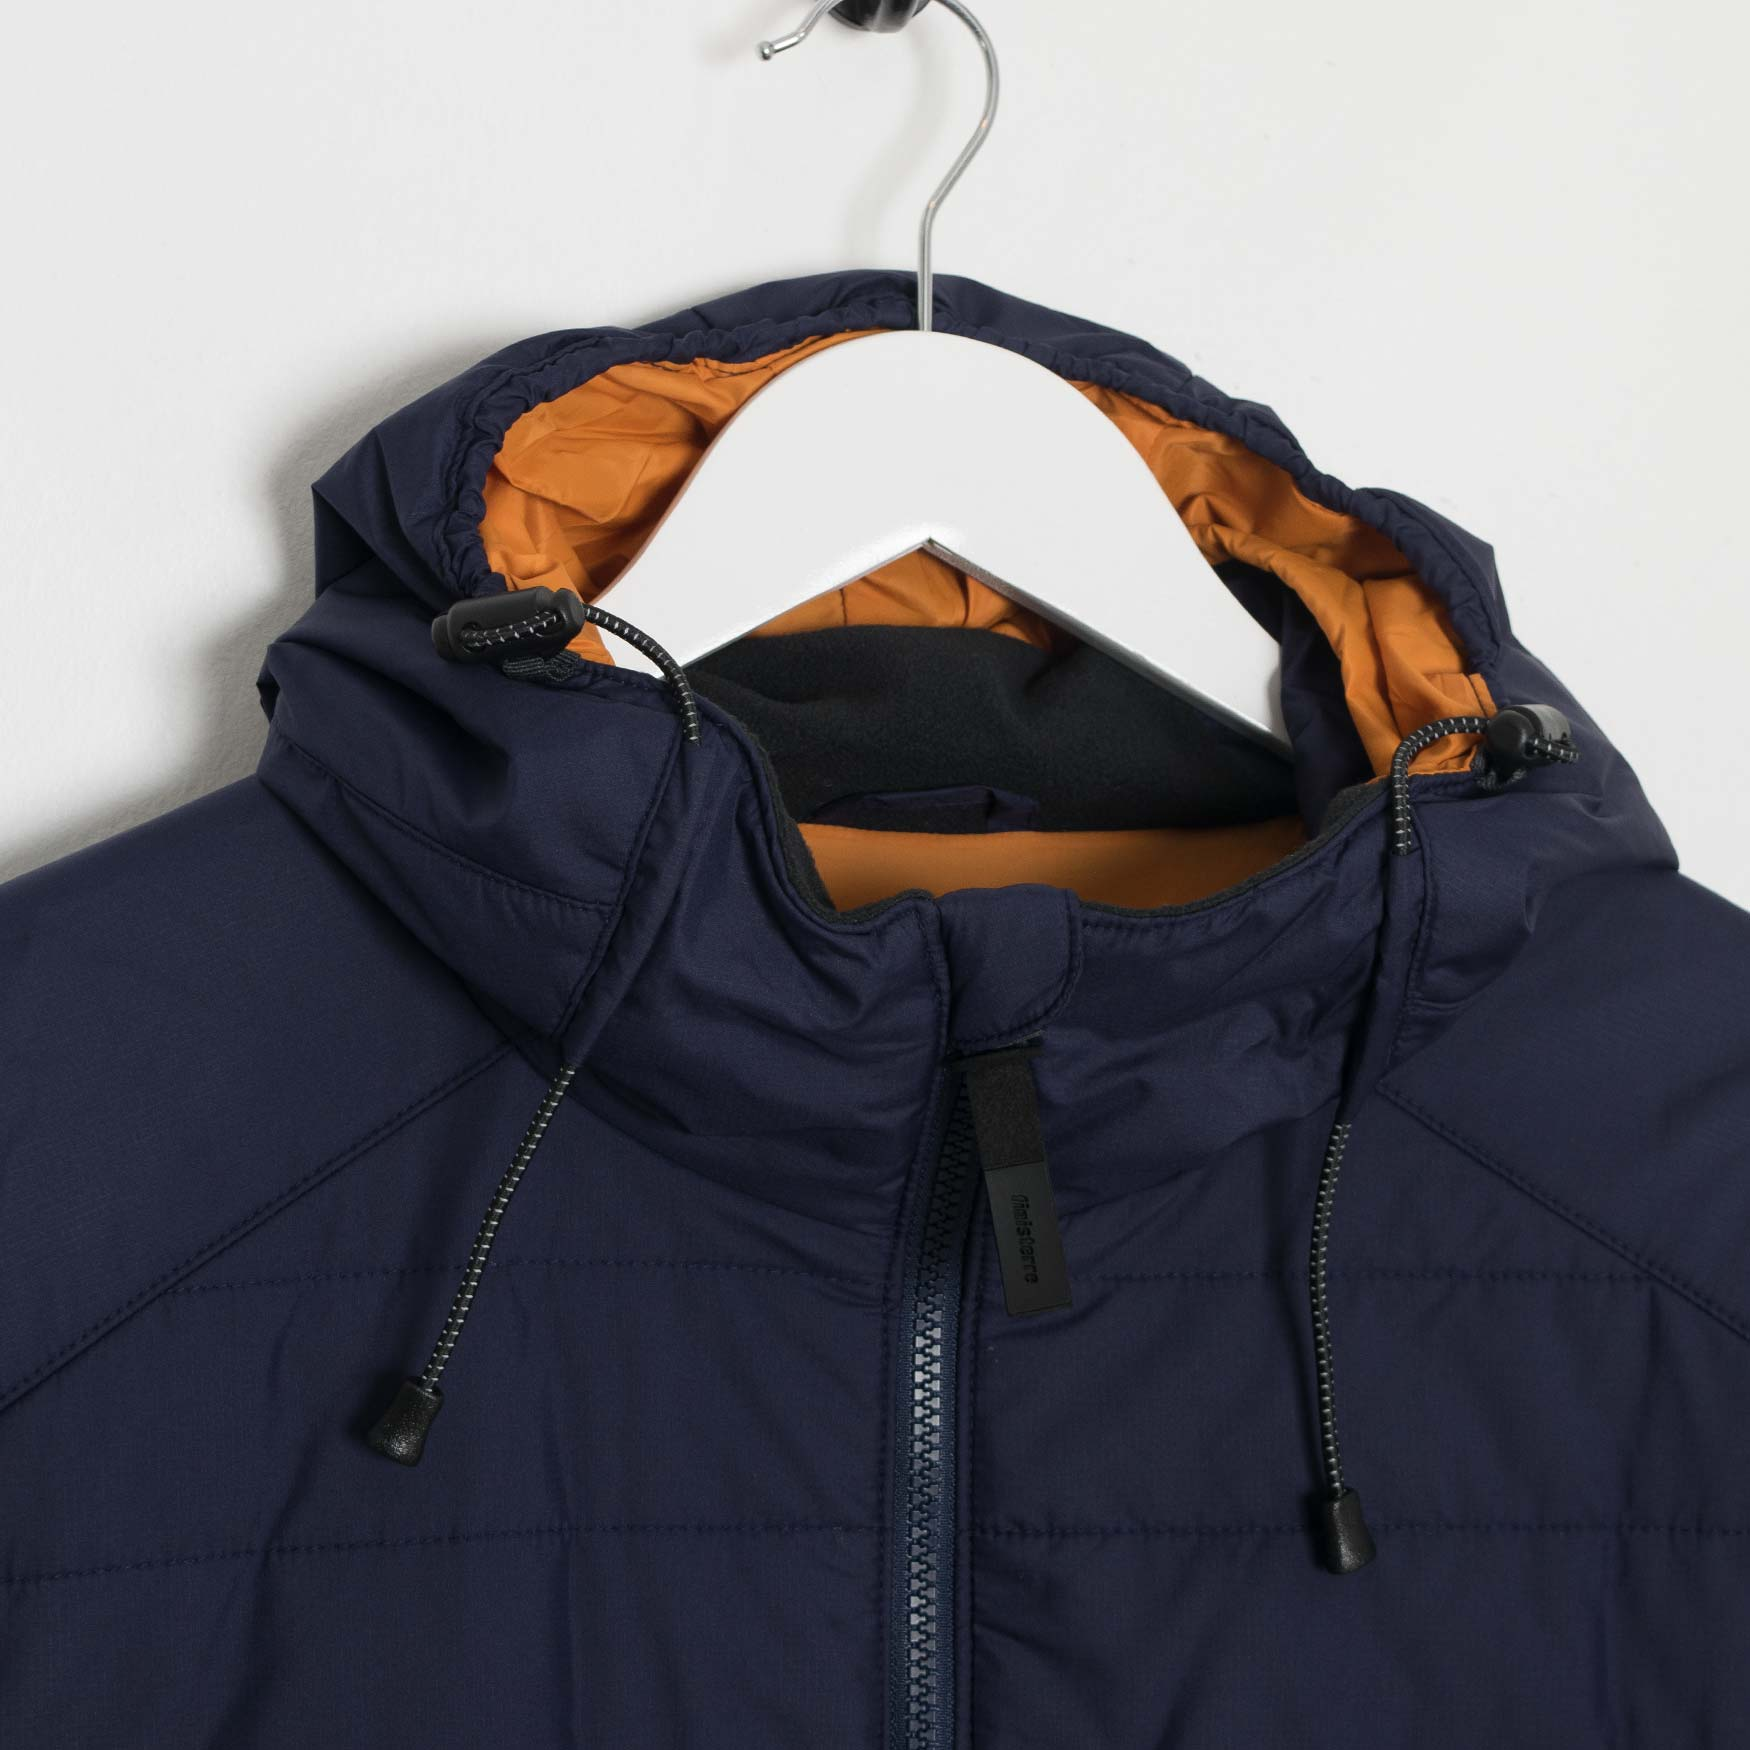 Finisterre Nimbus Jacket - Moonlight